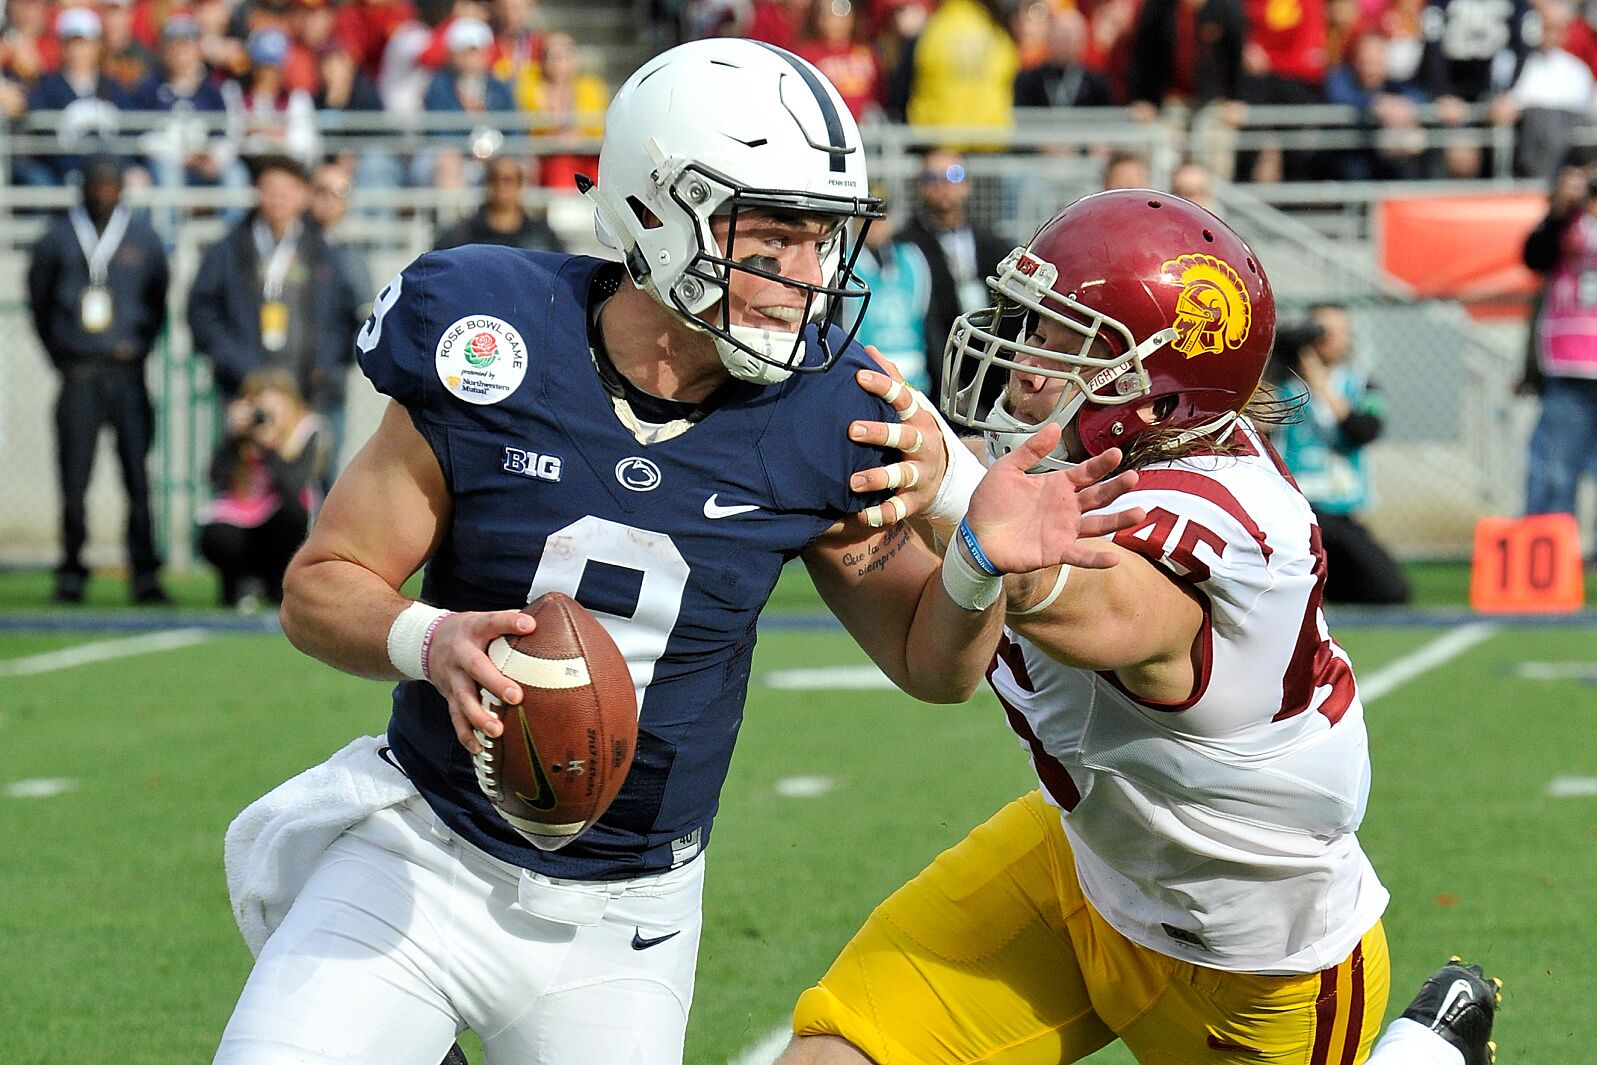 8f52e23d PASADENA, CA – JANUARY 02: Defensive end Porter Gustin #45 of the USC  Trojans attempts to tackle quarterback Trace McSorley #9 of the Penn State  Nittany ...